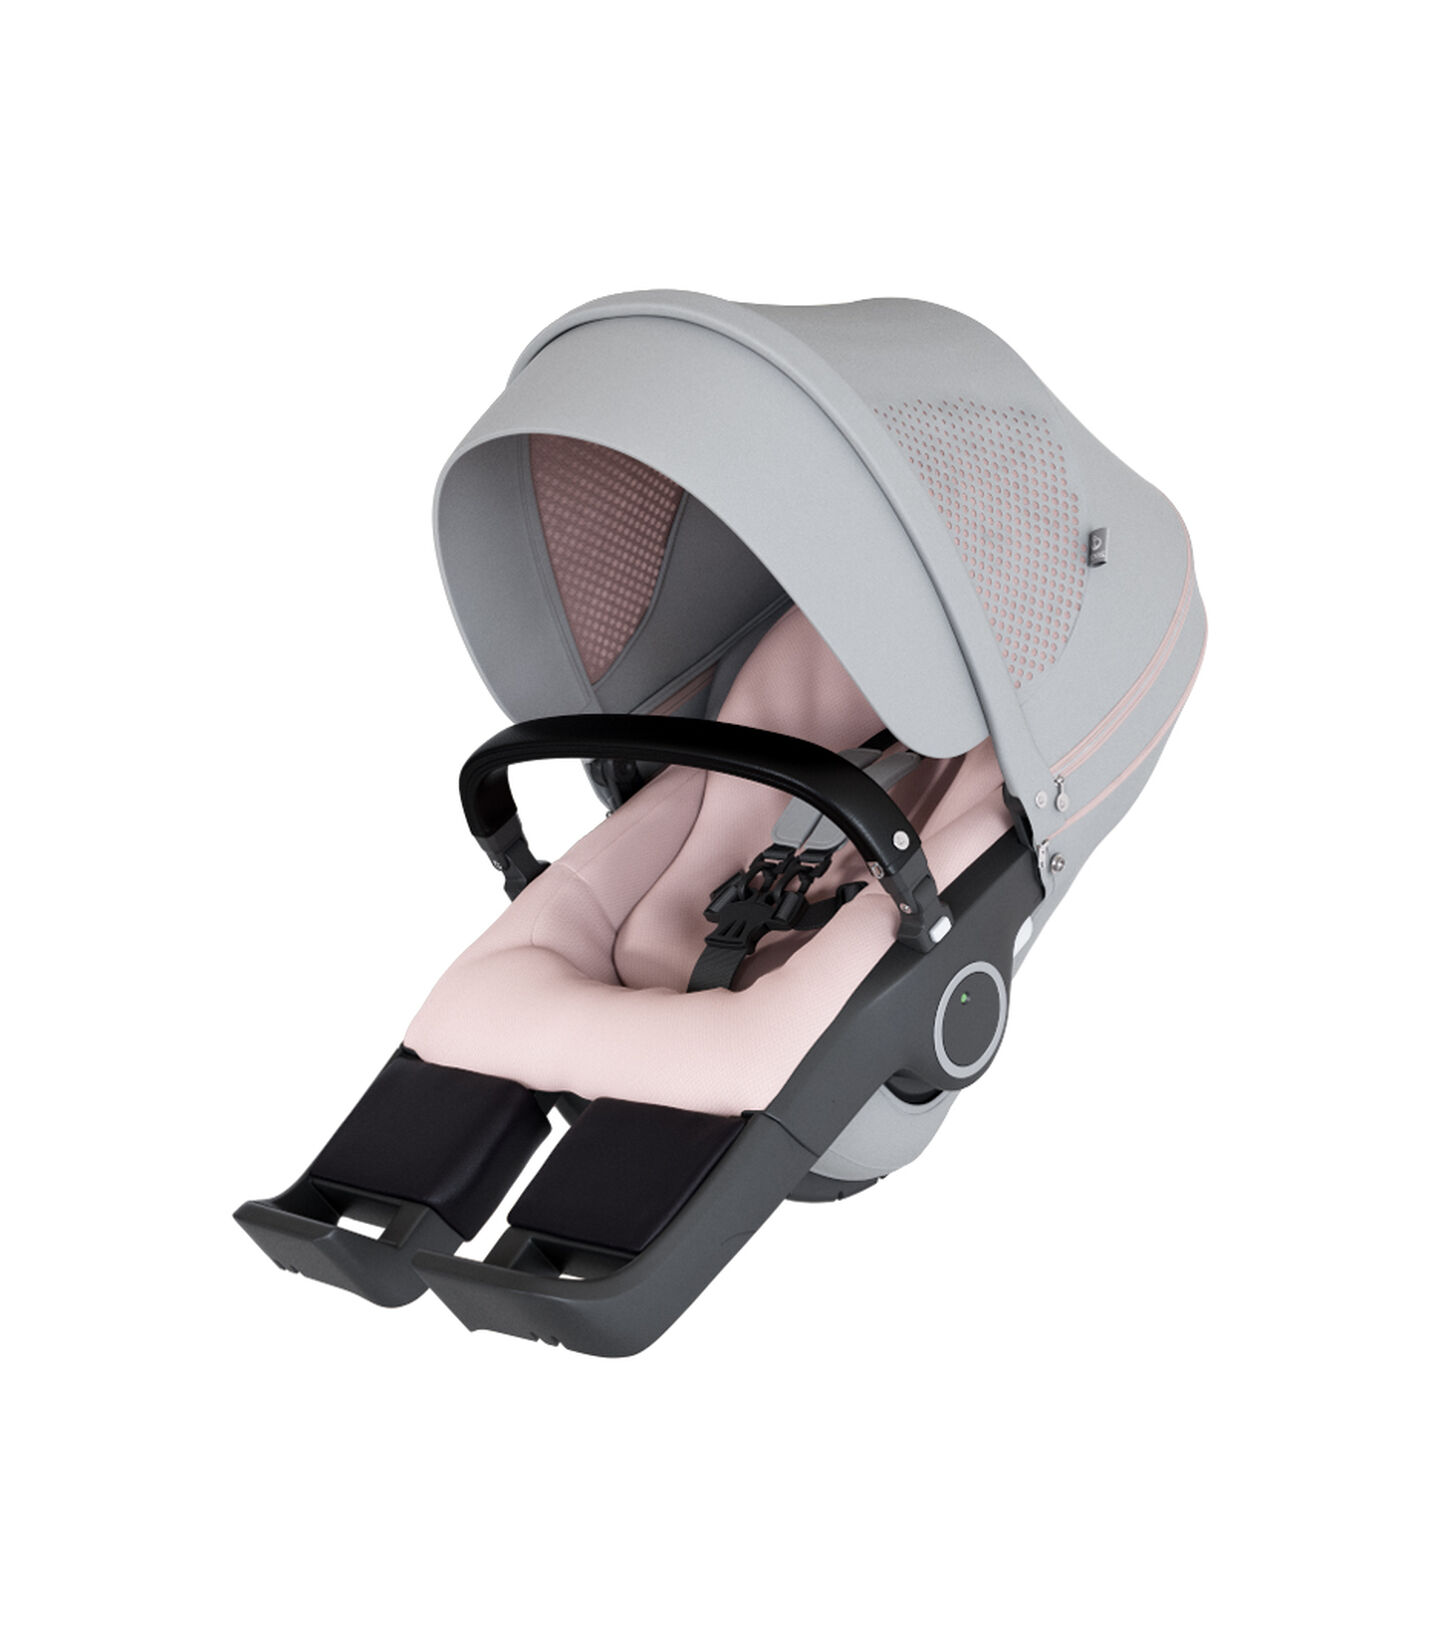 Stokke® Stroller Seat Complete Athleisure Pink, Athleisure Pink, mainview view 2